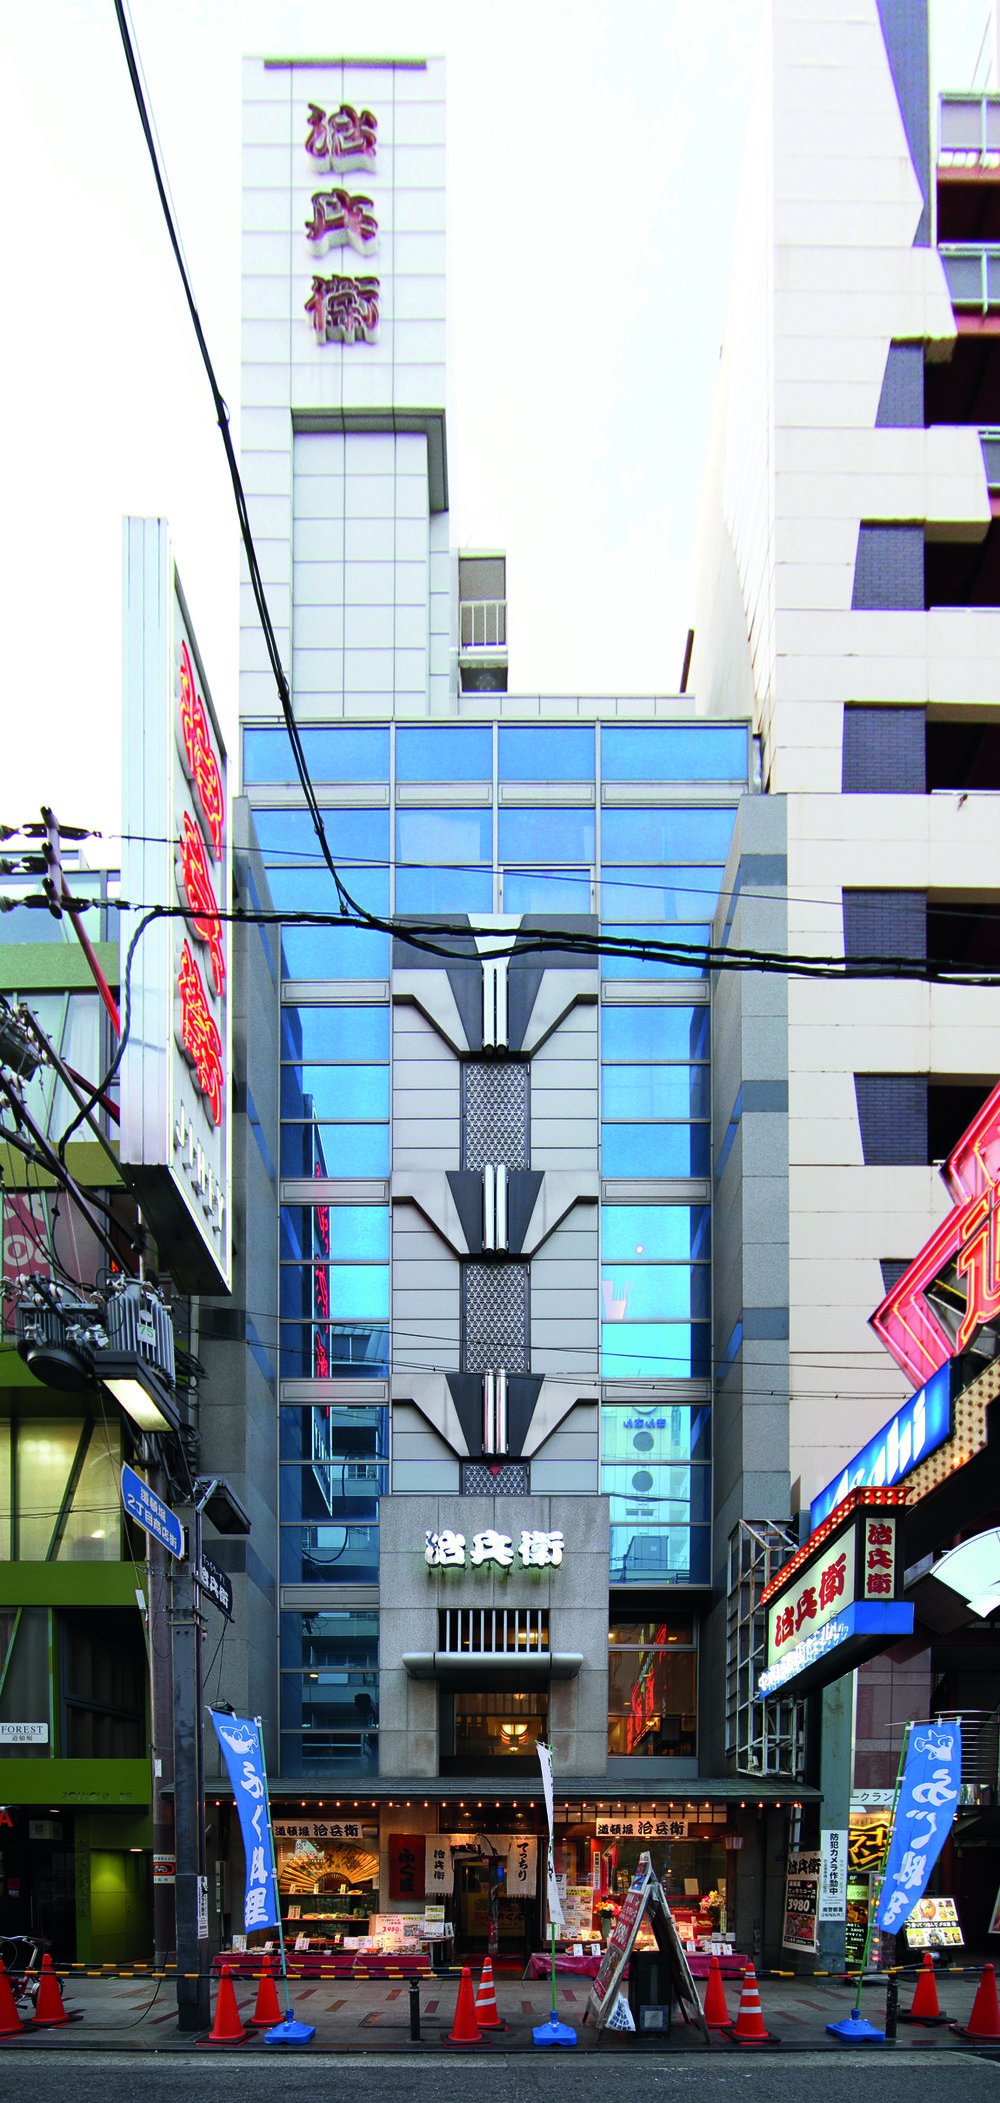 Image 4 / Any base building may have several of these scaffold extensions or entrances. Two modern pencil buildings and their add-ons, Bakuromachi and Dōtonbori, Osaka, Photograph by CC Williams